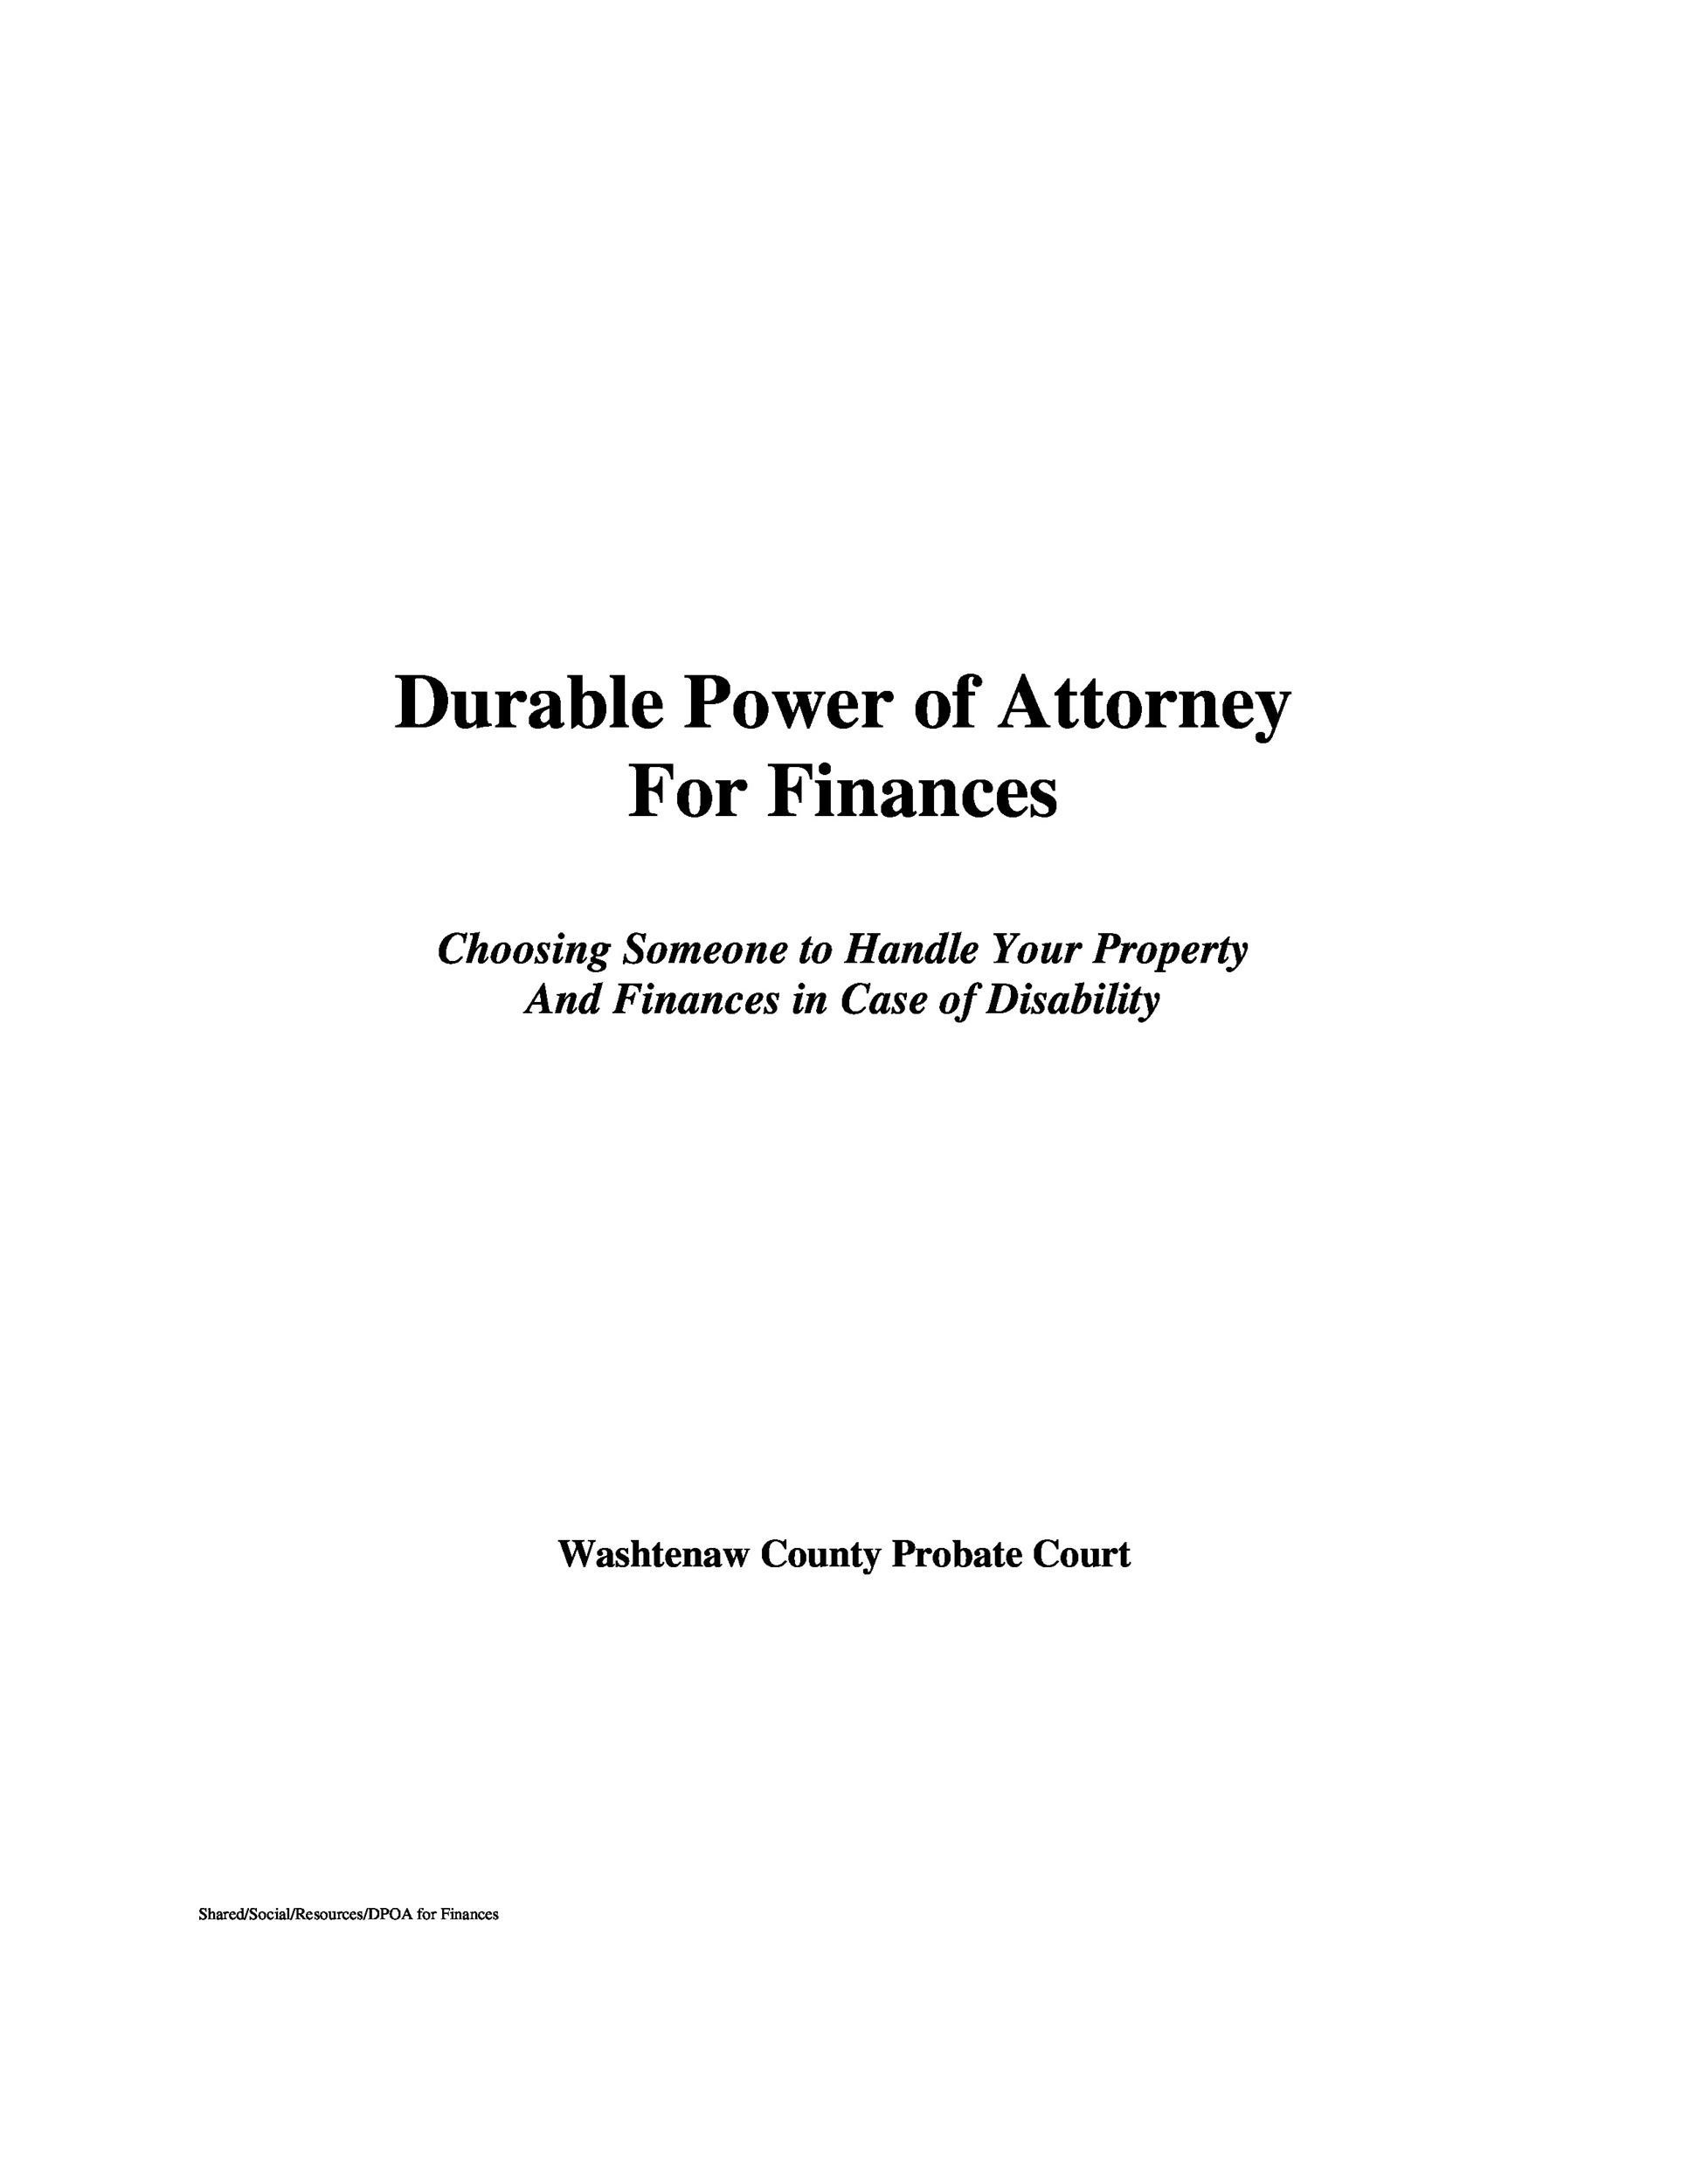 50 free power of attorney forms templates durable medicalgeneral power of attorney templates falaconquin